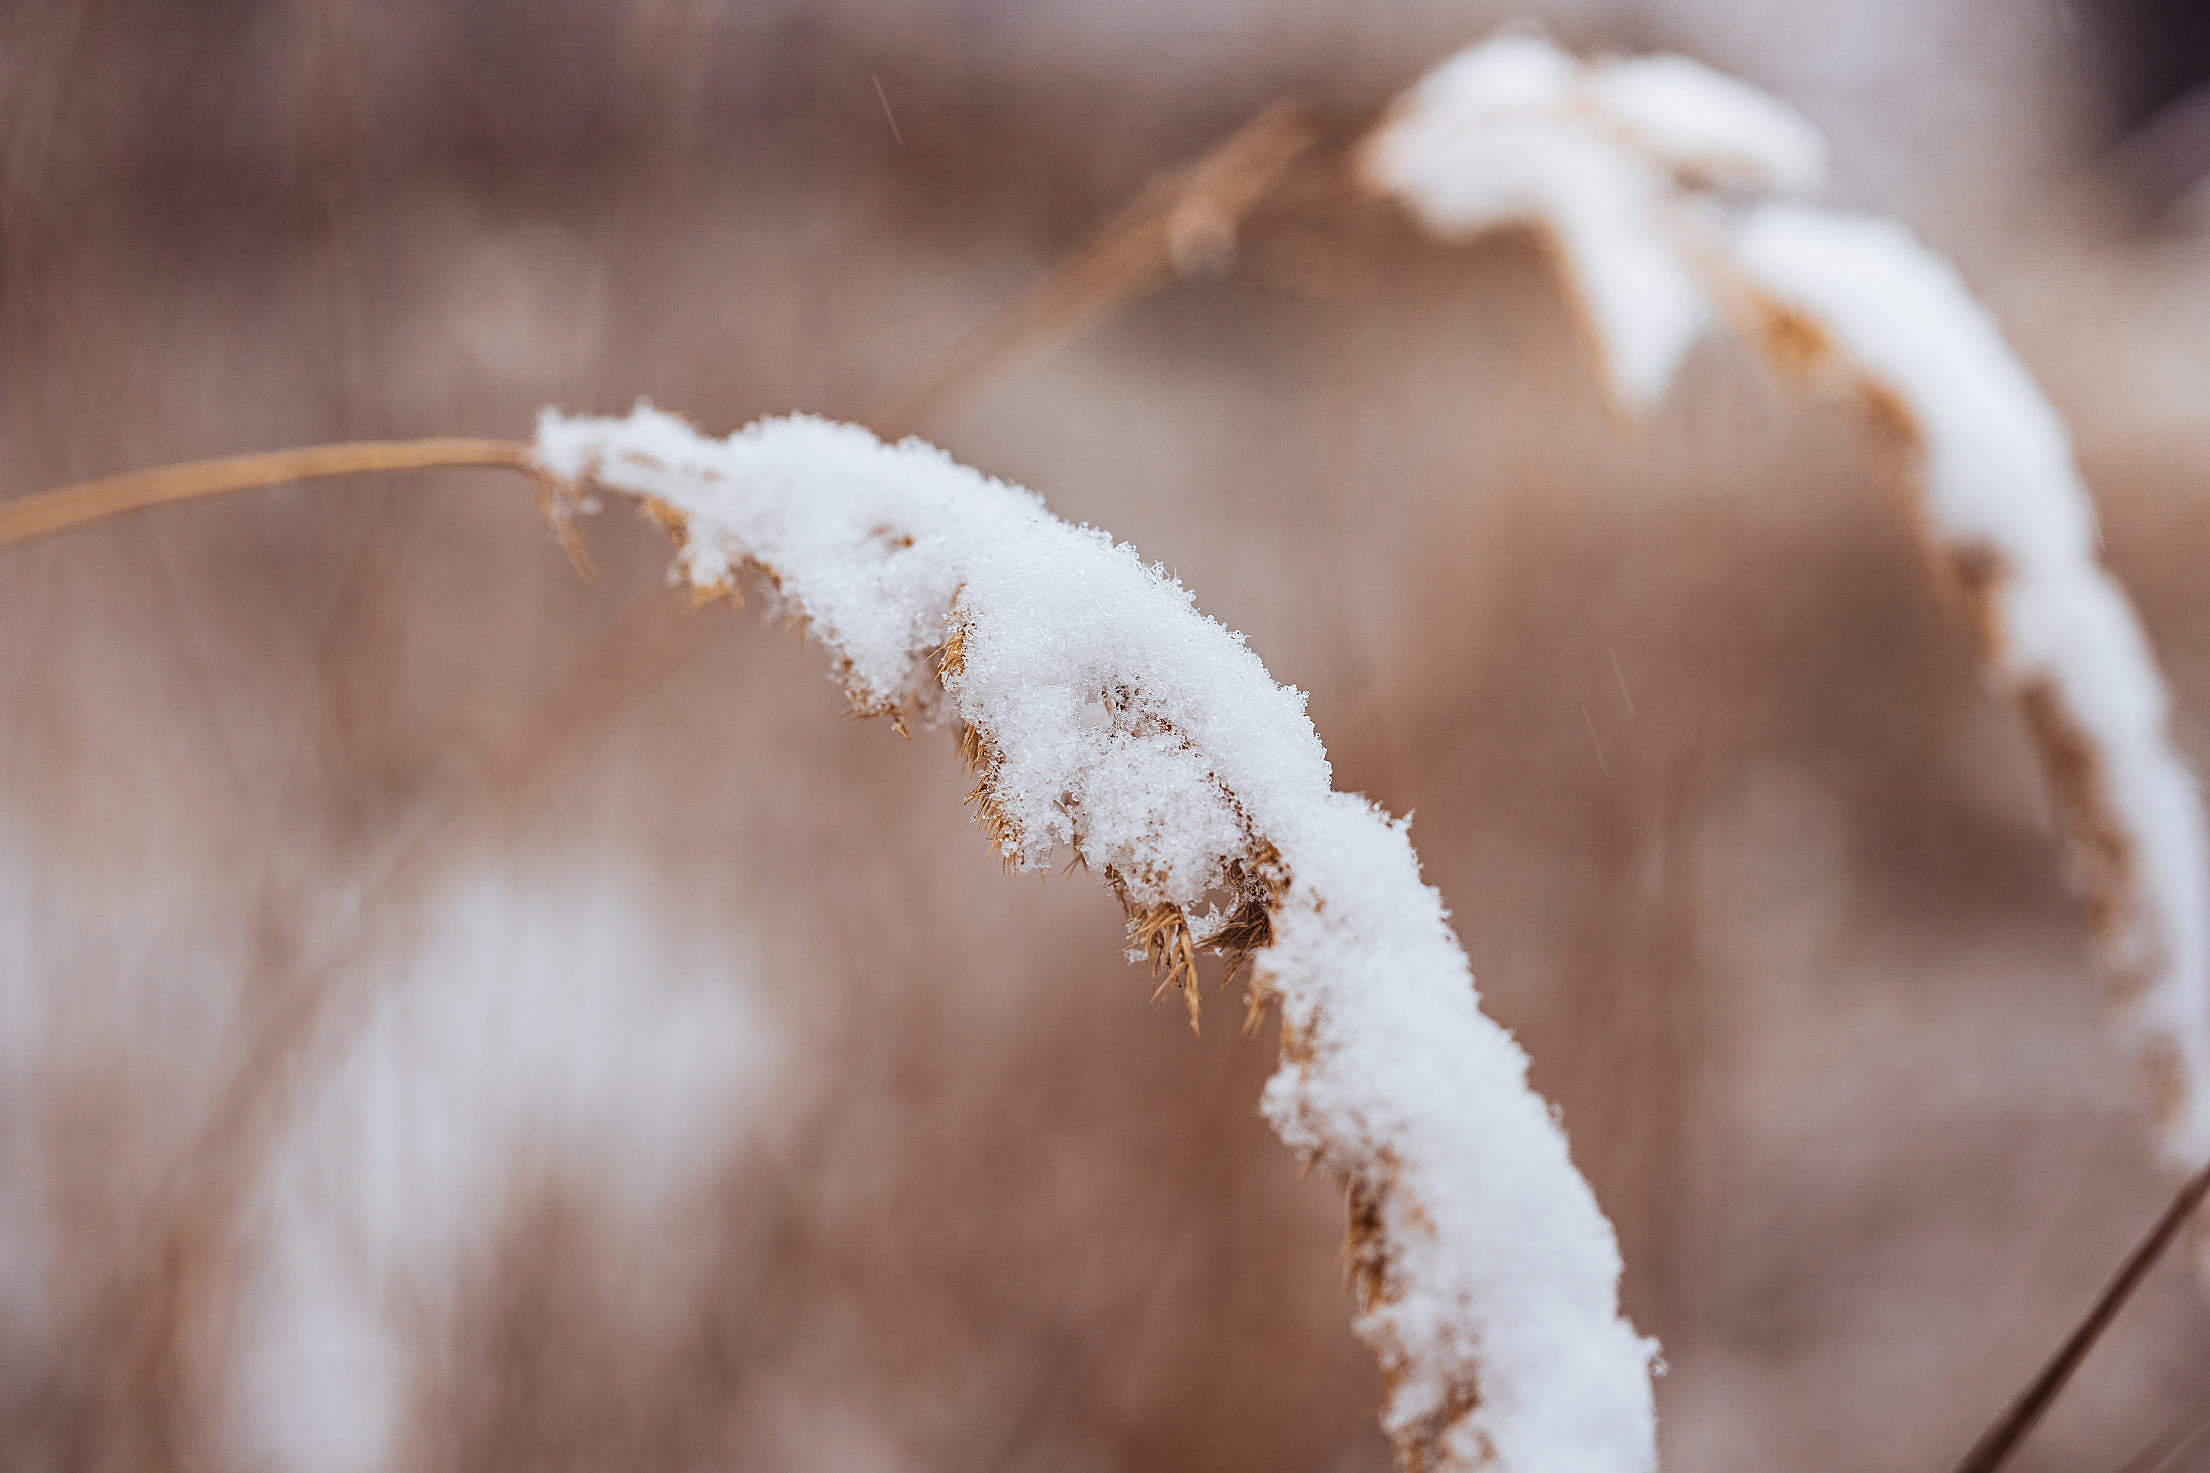 Snowy Dry Grass Free Stock Photo